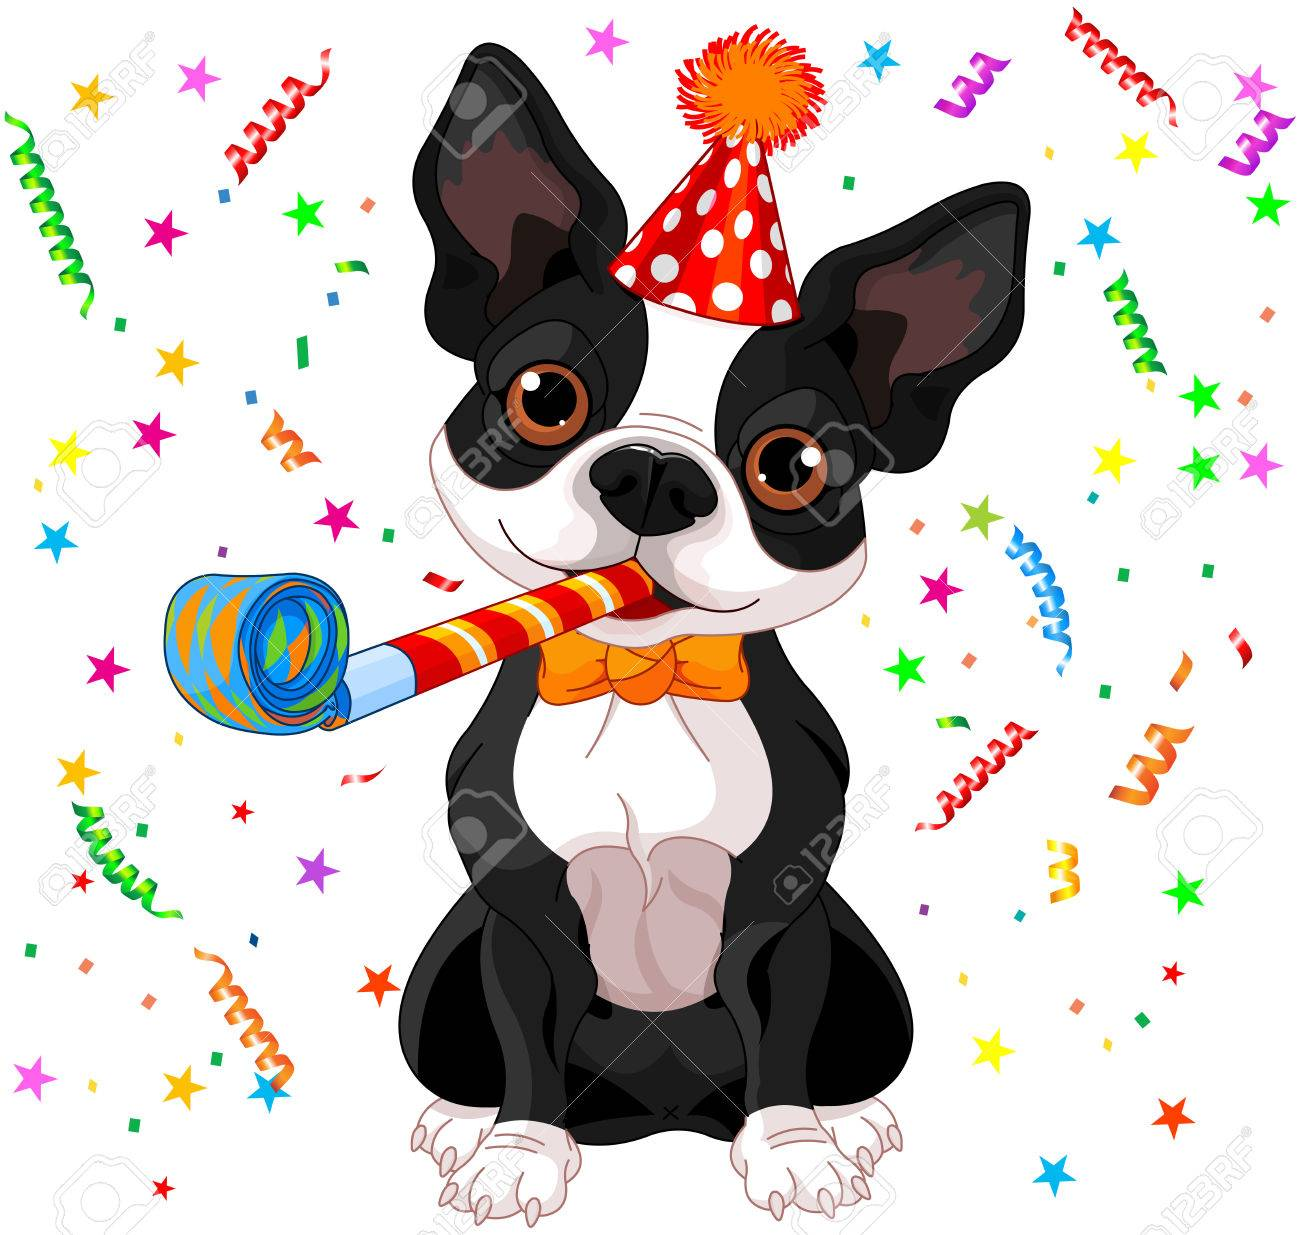 Clicker et apprentissage de la propreté 35588778-illustration-of-cute-boston-terrier-celebrating